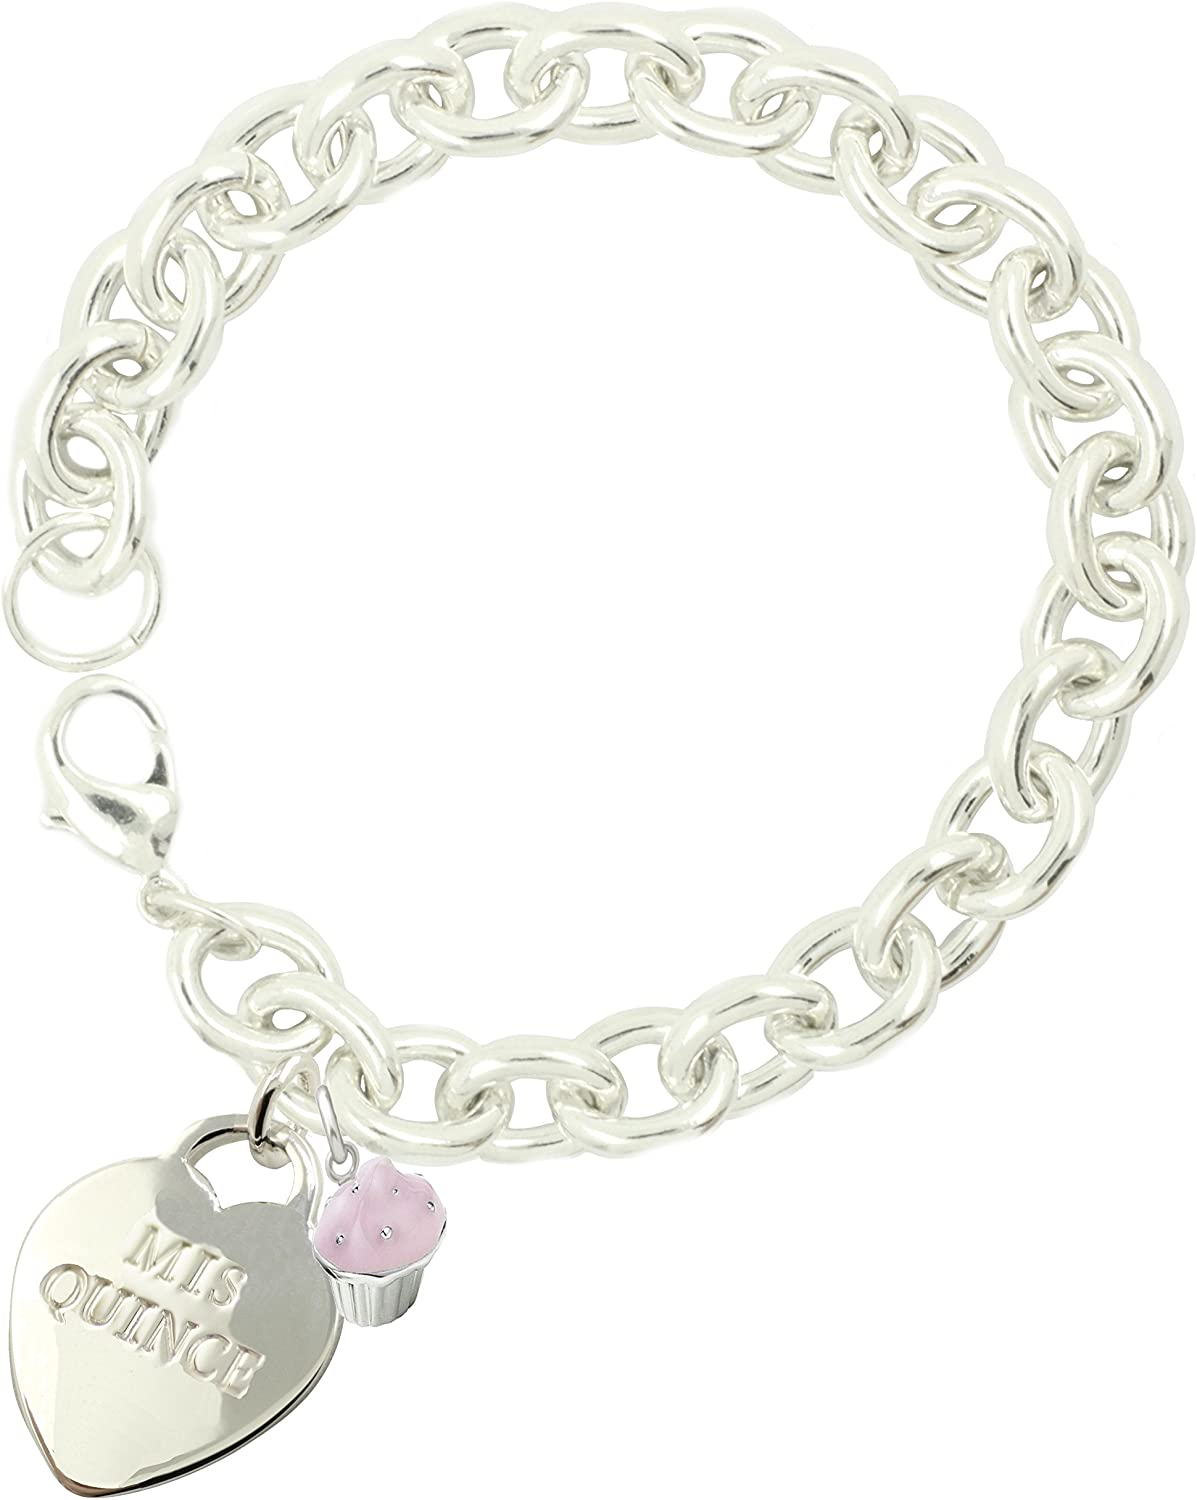 New York 925 Co. Quinceanera CC Plated Bracelet Manufacturer Challenge the lowest price of Japan direct delivery